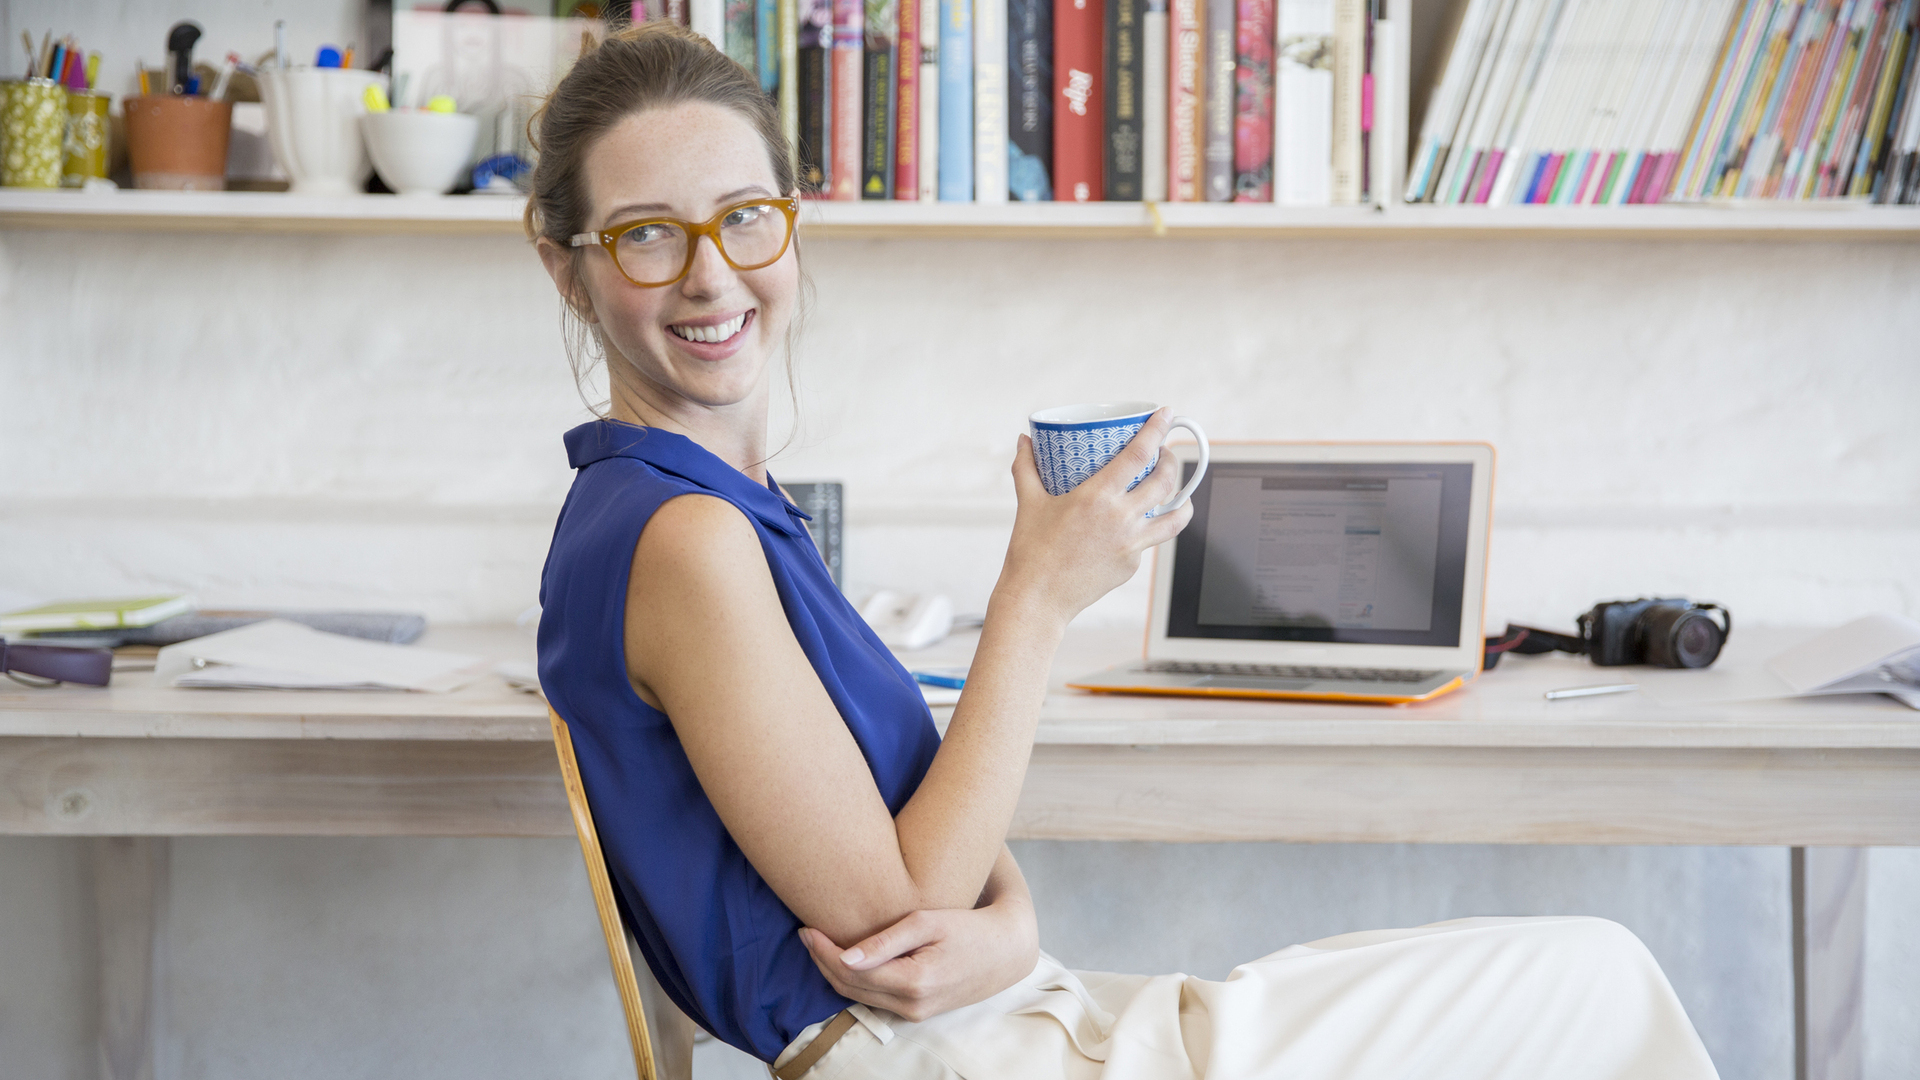 Remote Work: Strategies for Working from Home